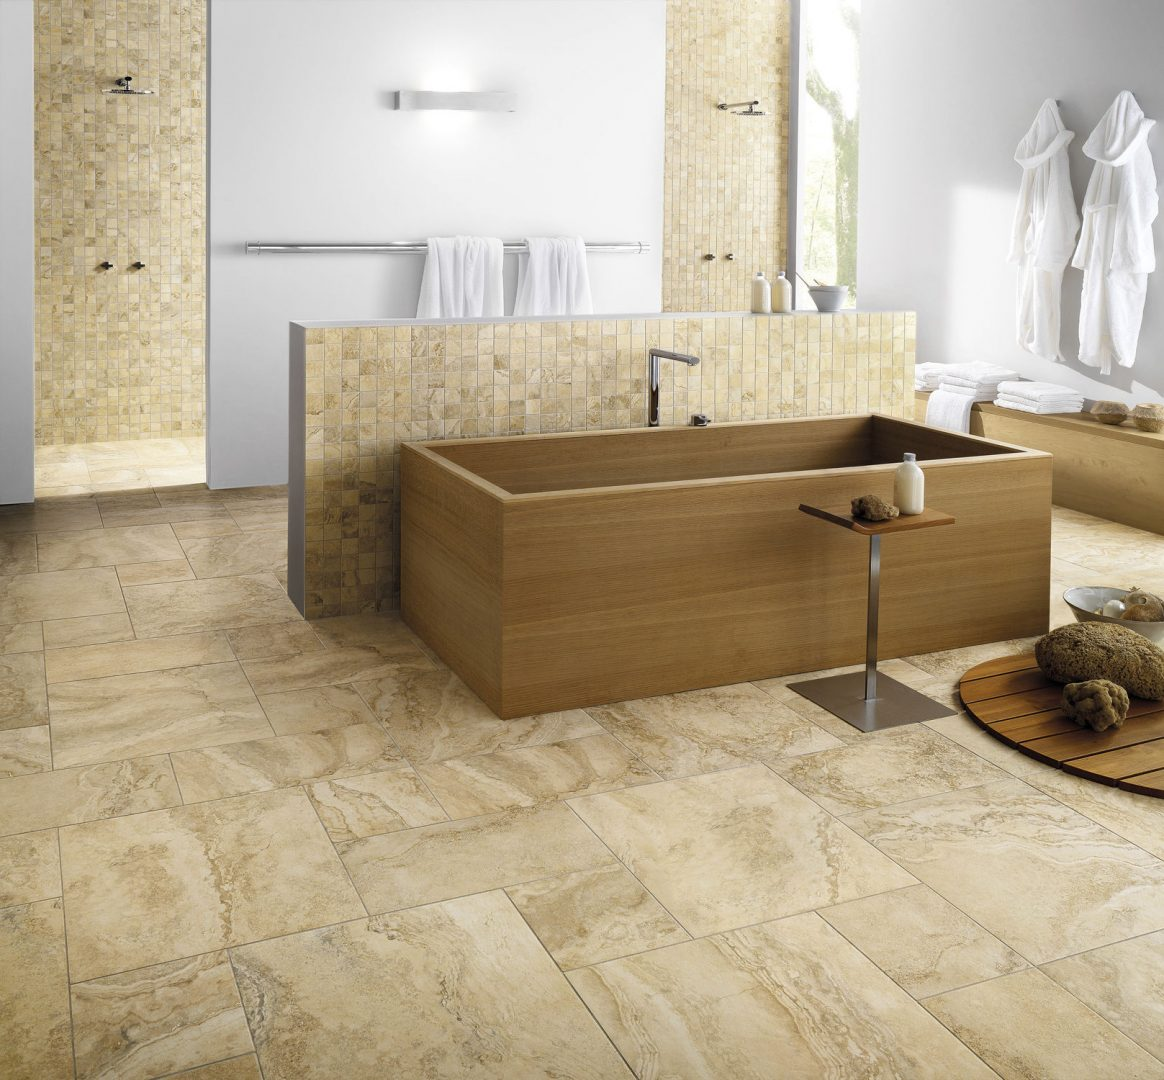 Azulejo Para Baño Pequeno:Marble Bathroom Floor Tile